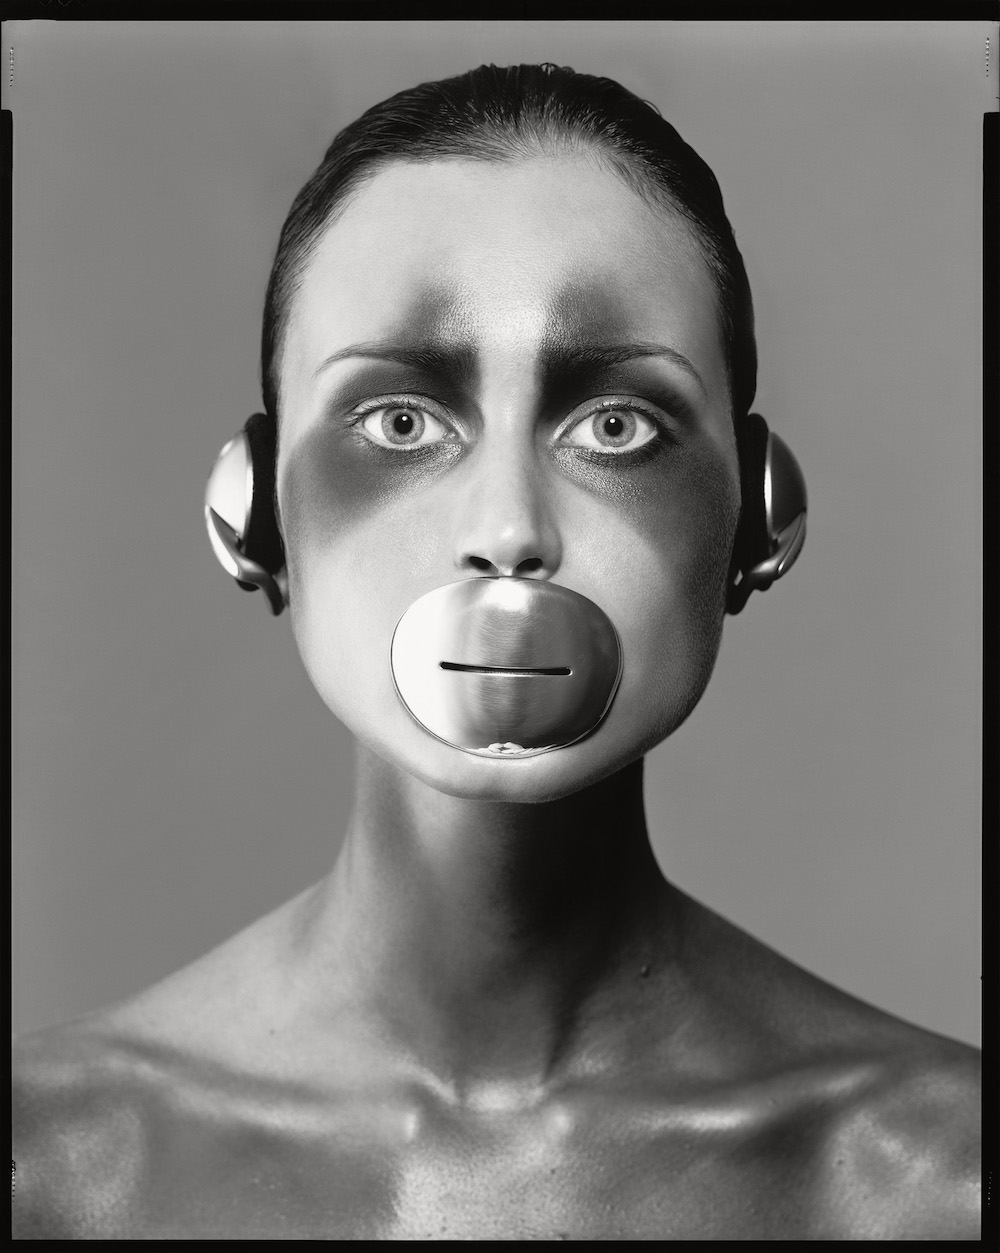 Natalia Semanova, Mouthpiece and Headphones by Tom Binns, New York, April 30, 1998